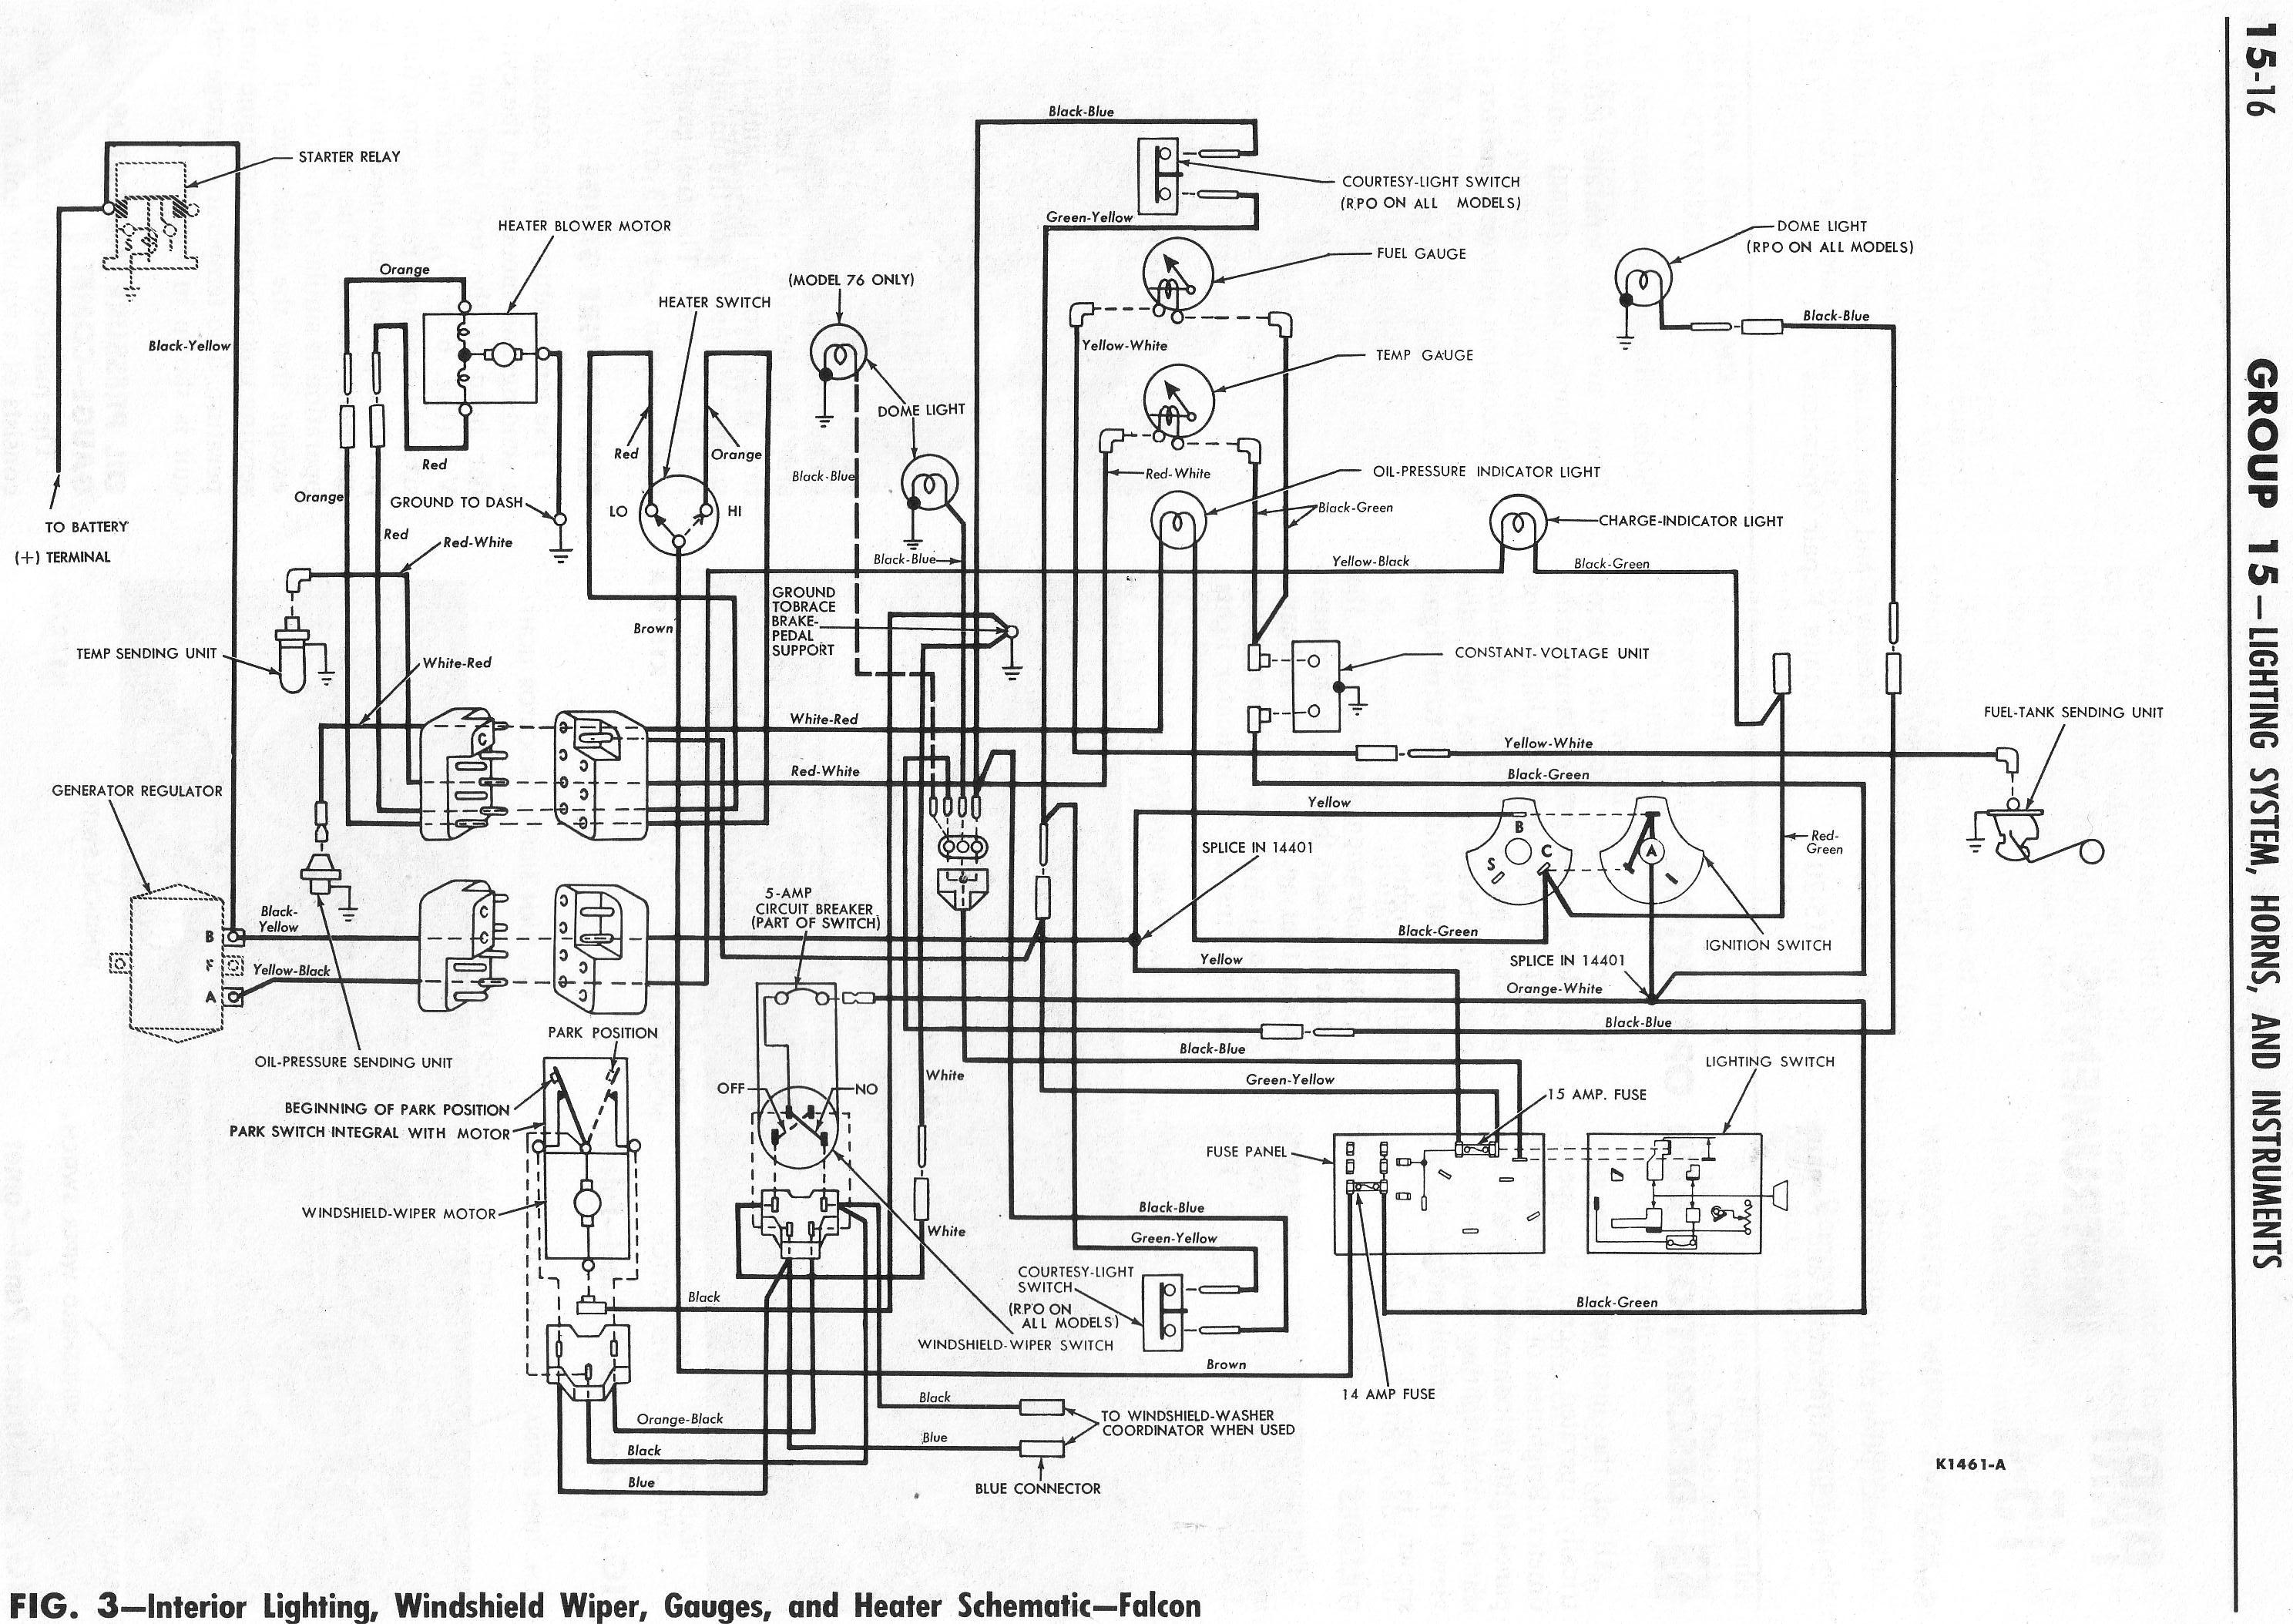 Icc Wiring Diagram